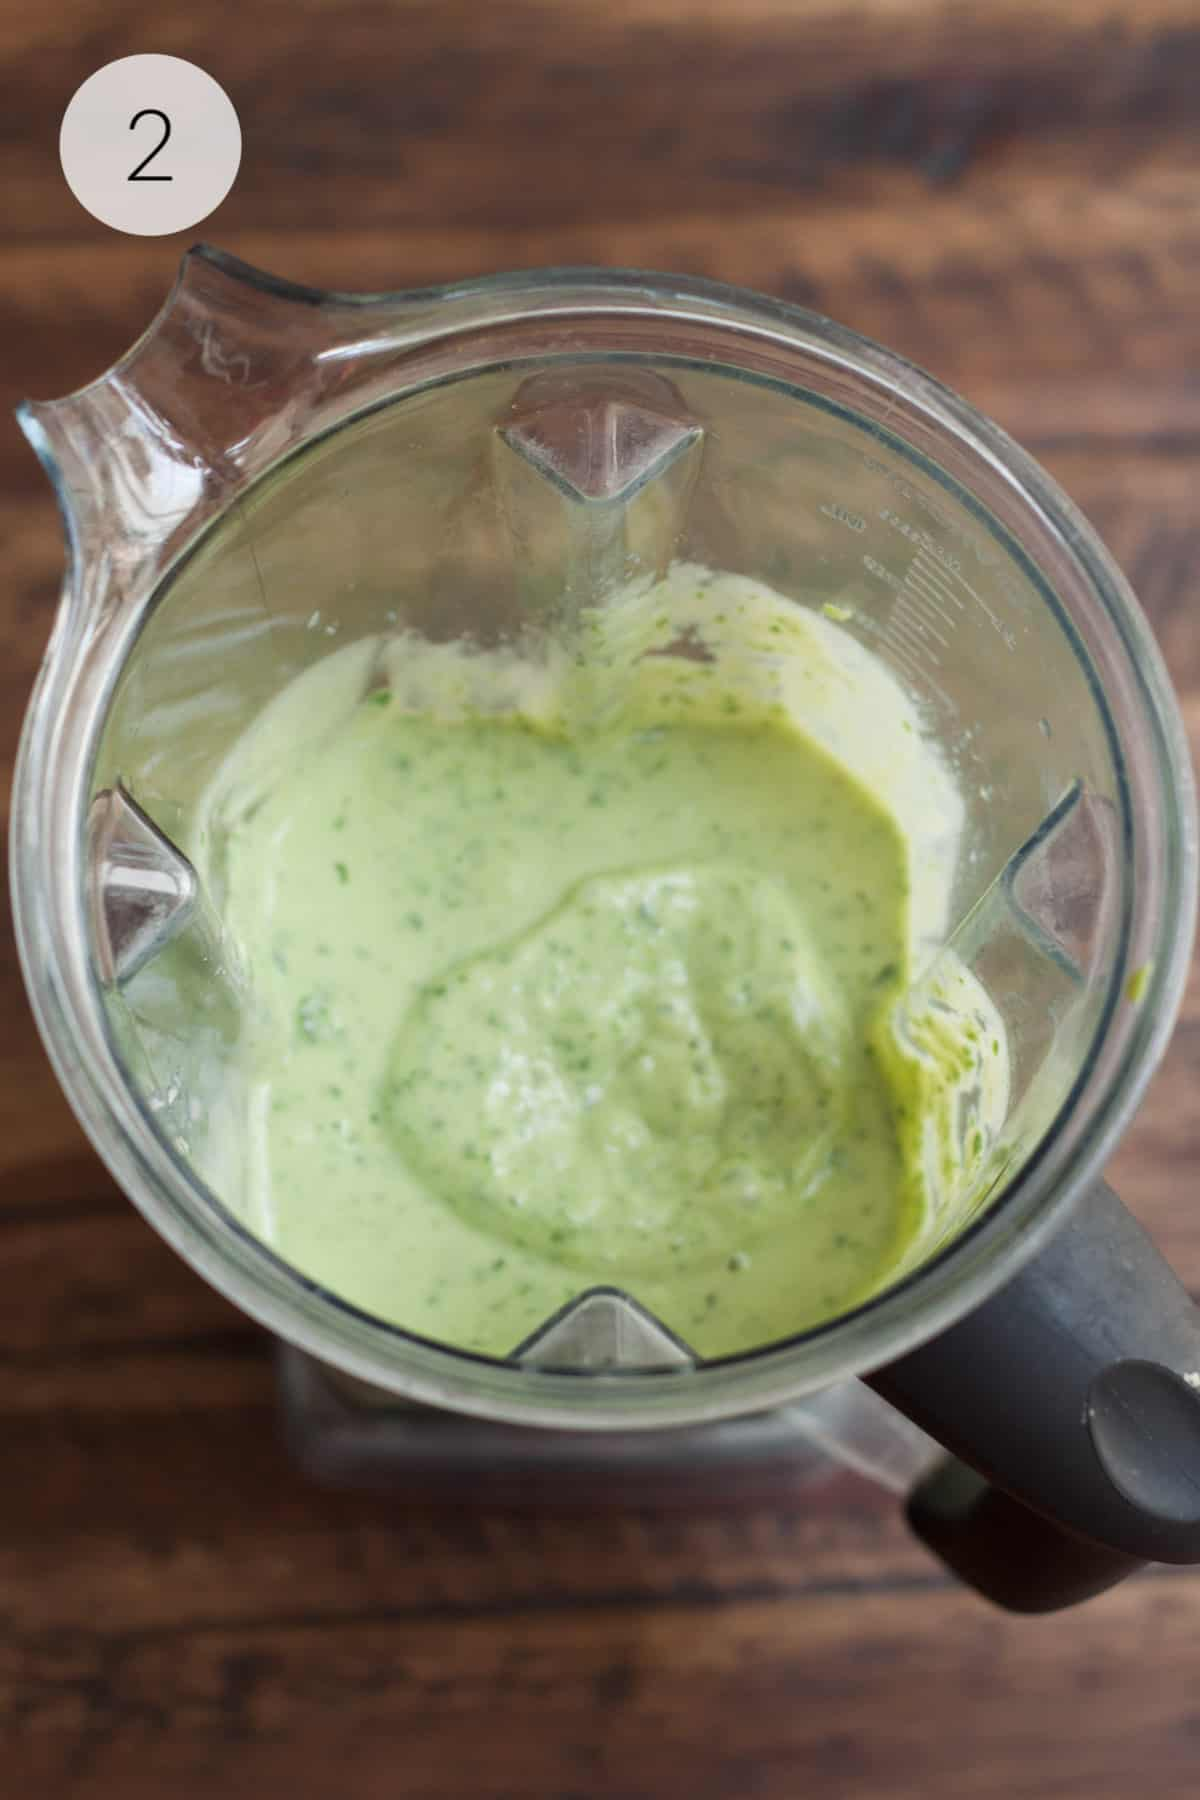 Blender jar with blended banana spinach and avocado smoothie.